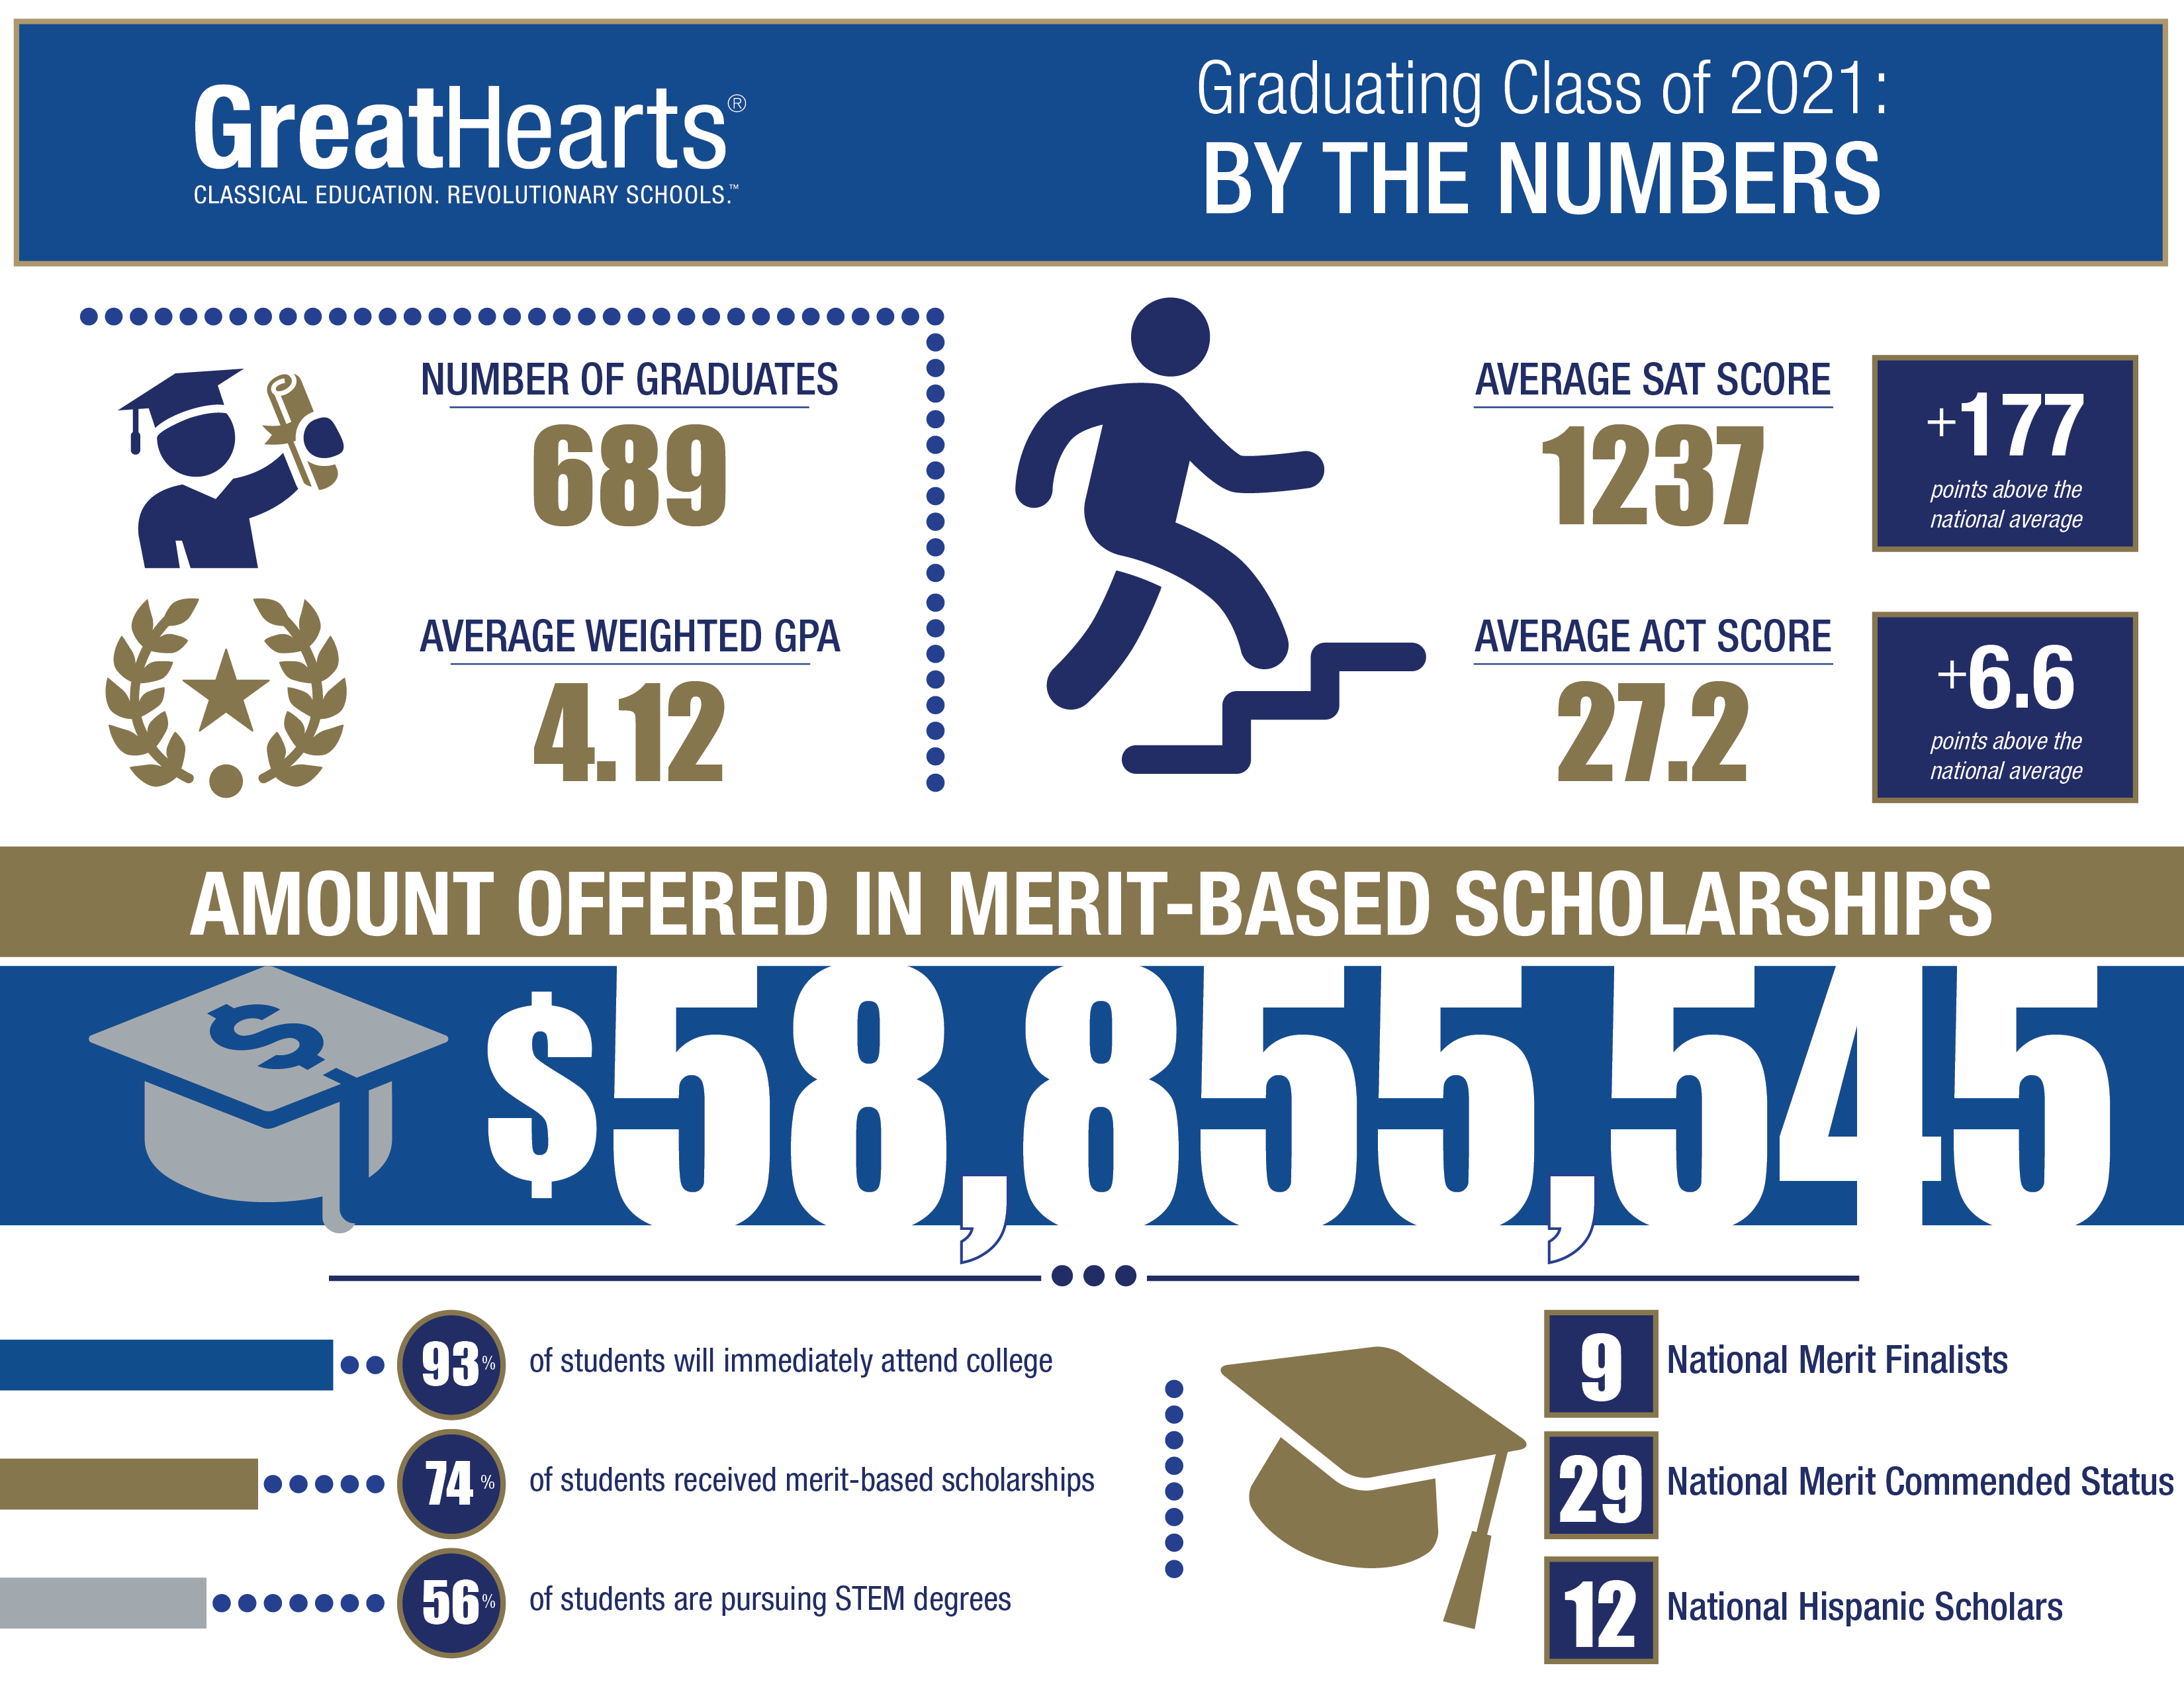 Great Hearts Class of 2021